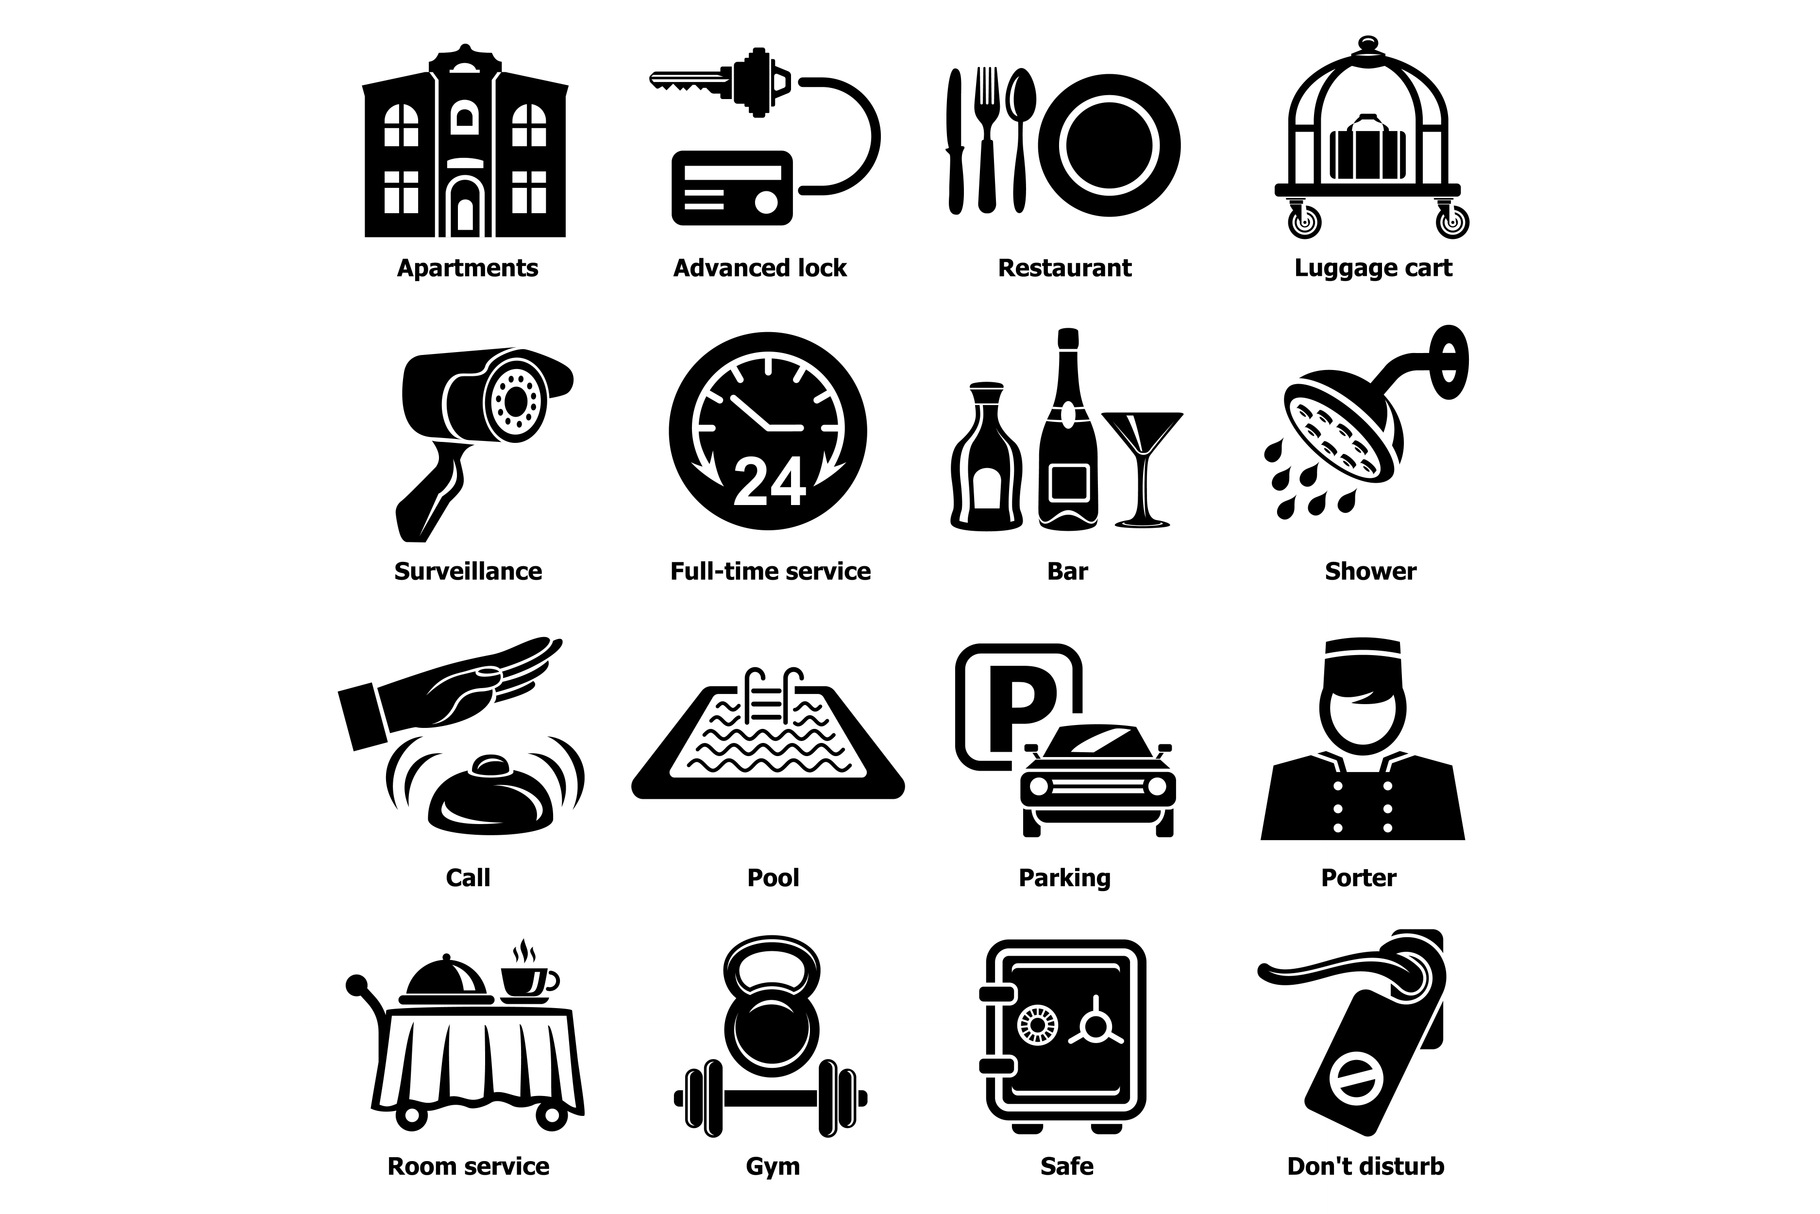 Hotel service icons set, simple style example image 1